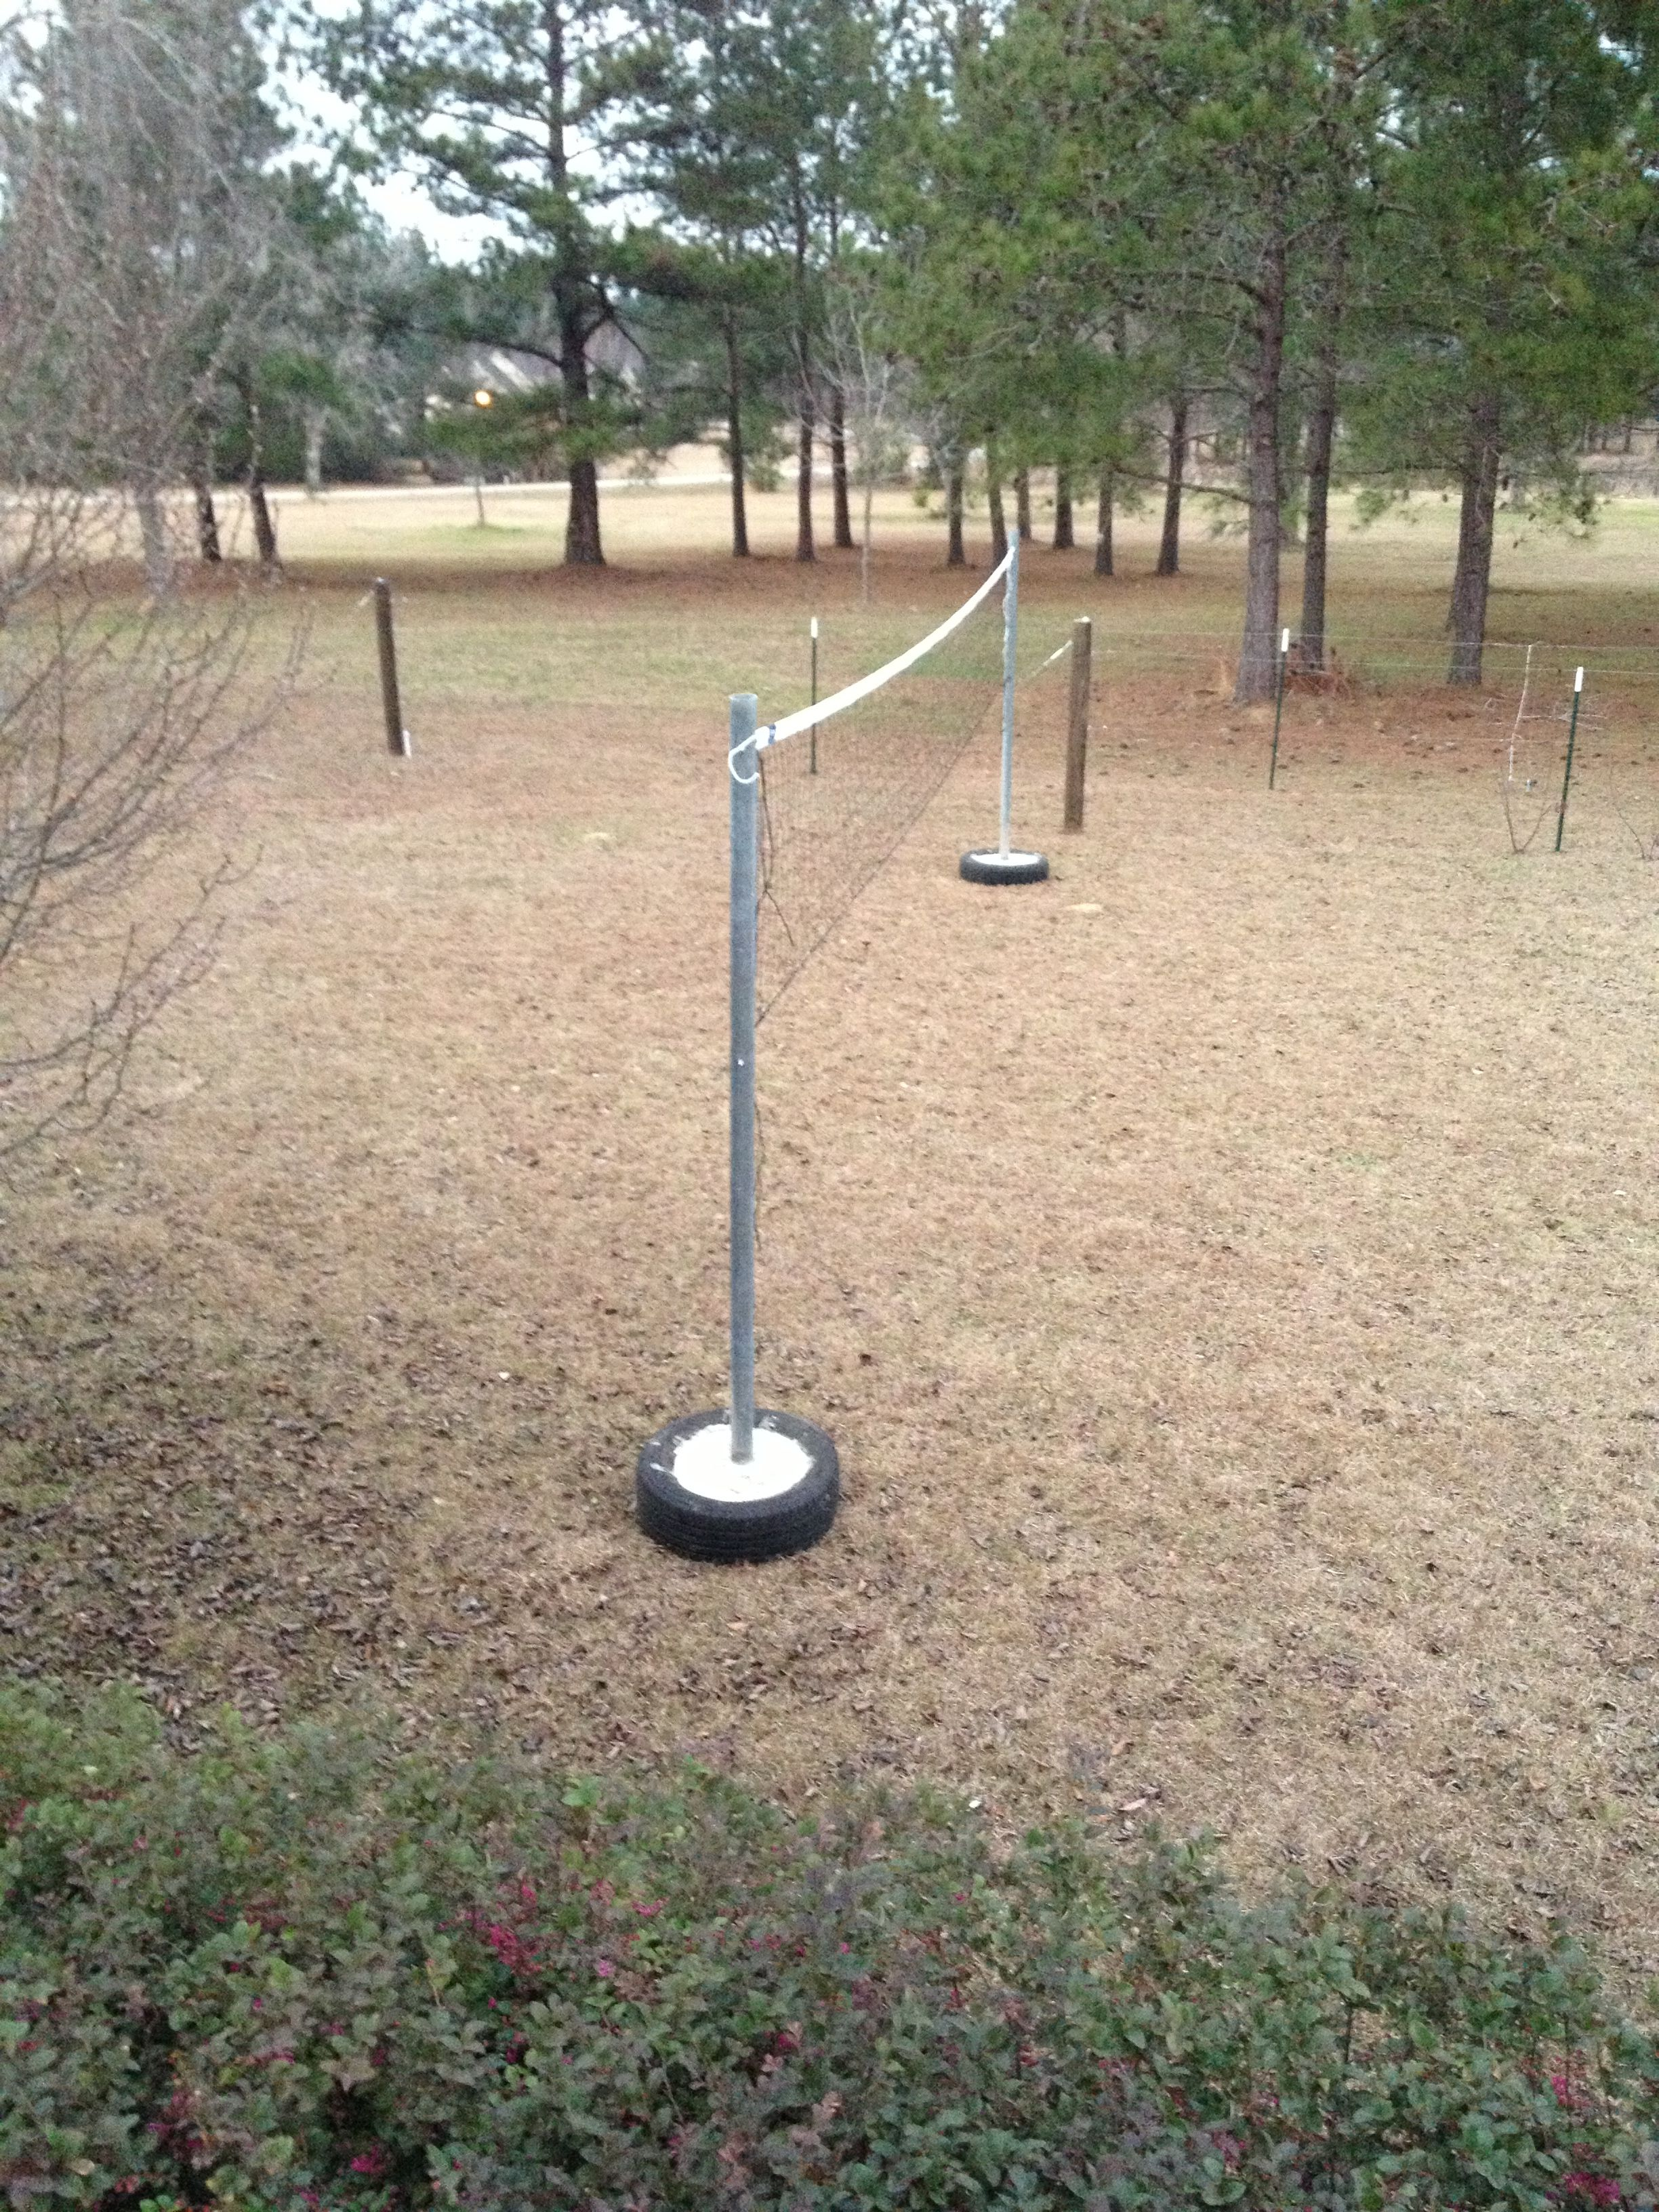 I M Sure This Has Been Around For A While This Makes It Easy To Move Around Our Volleyball P Backyard Basketball Basketball Court Backyard Backyard Playground